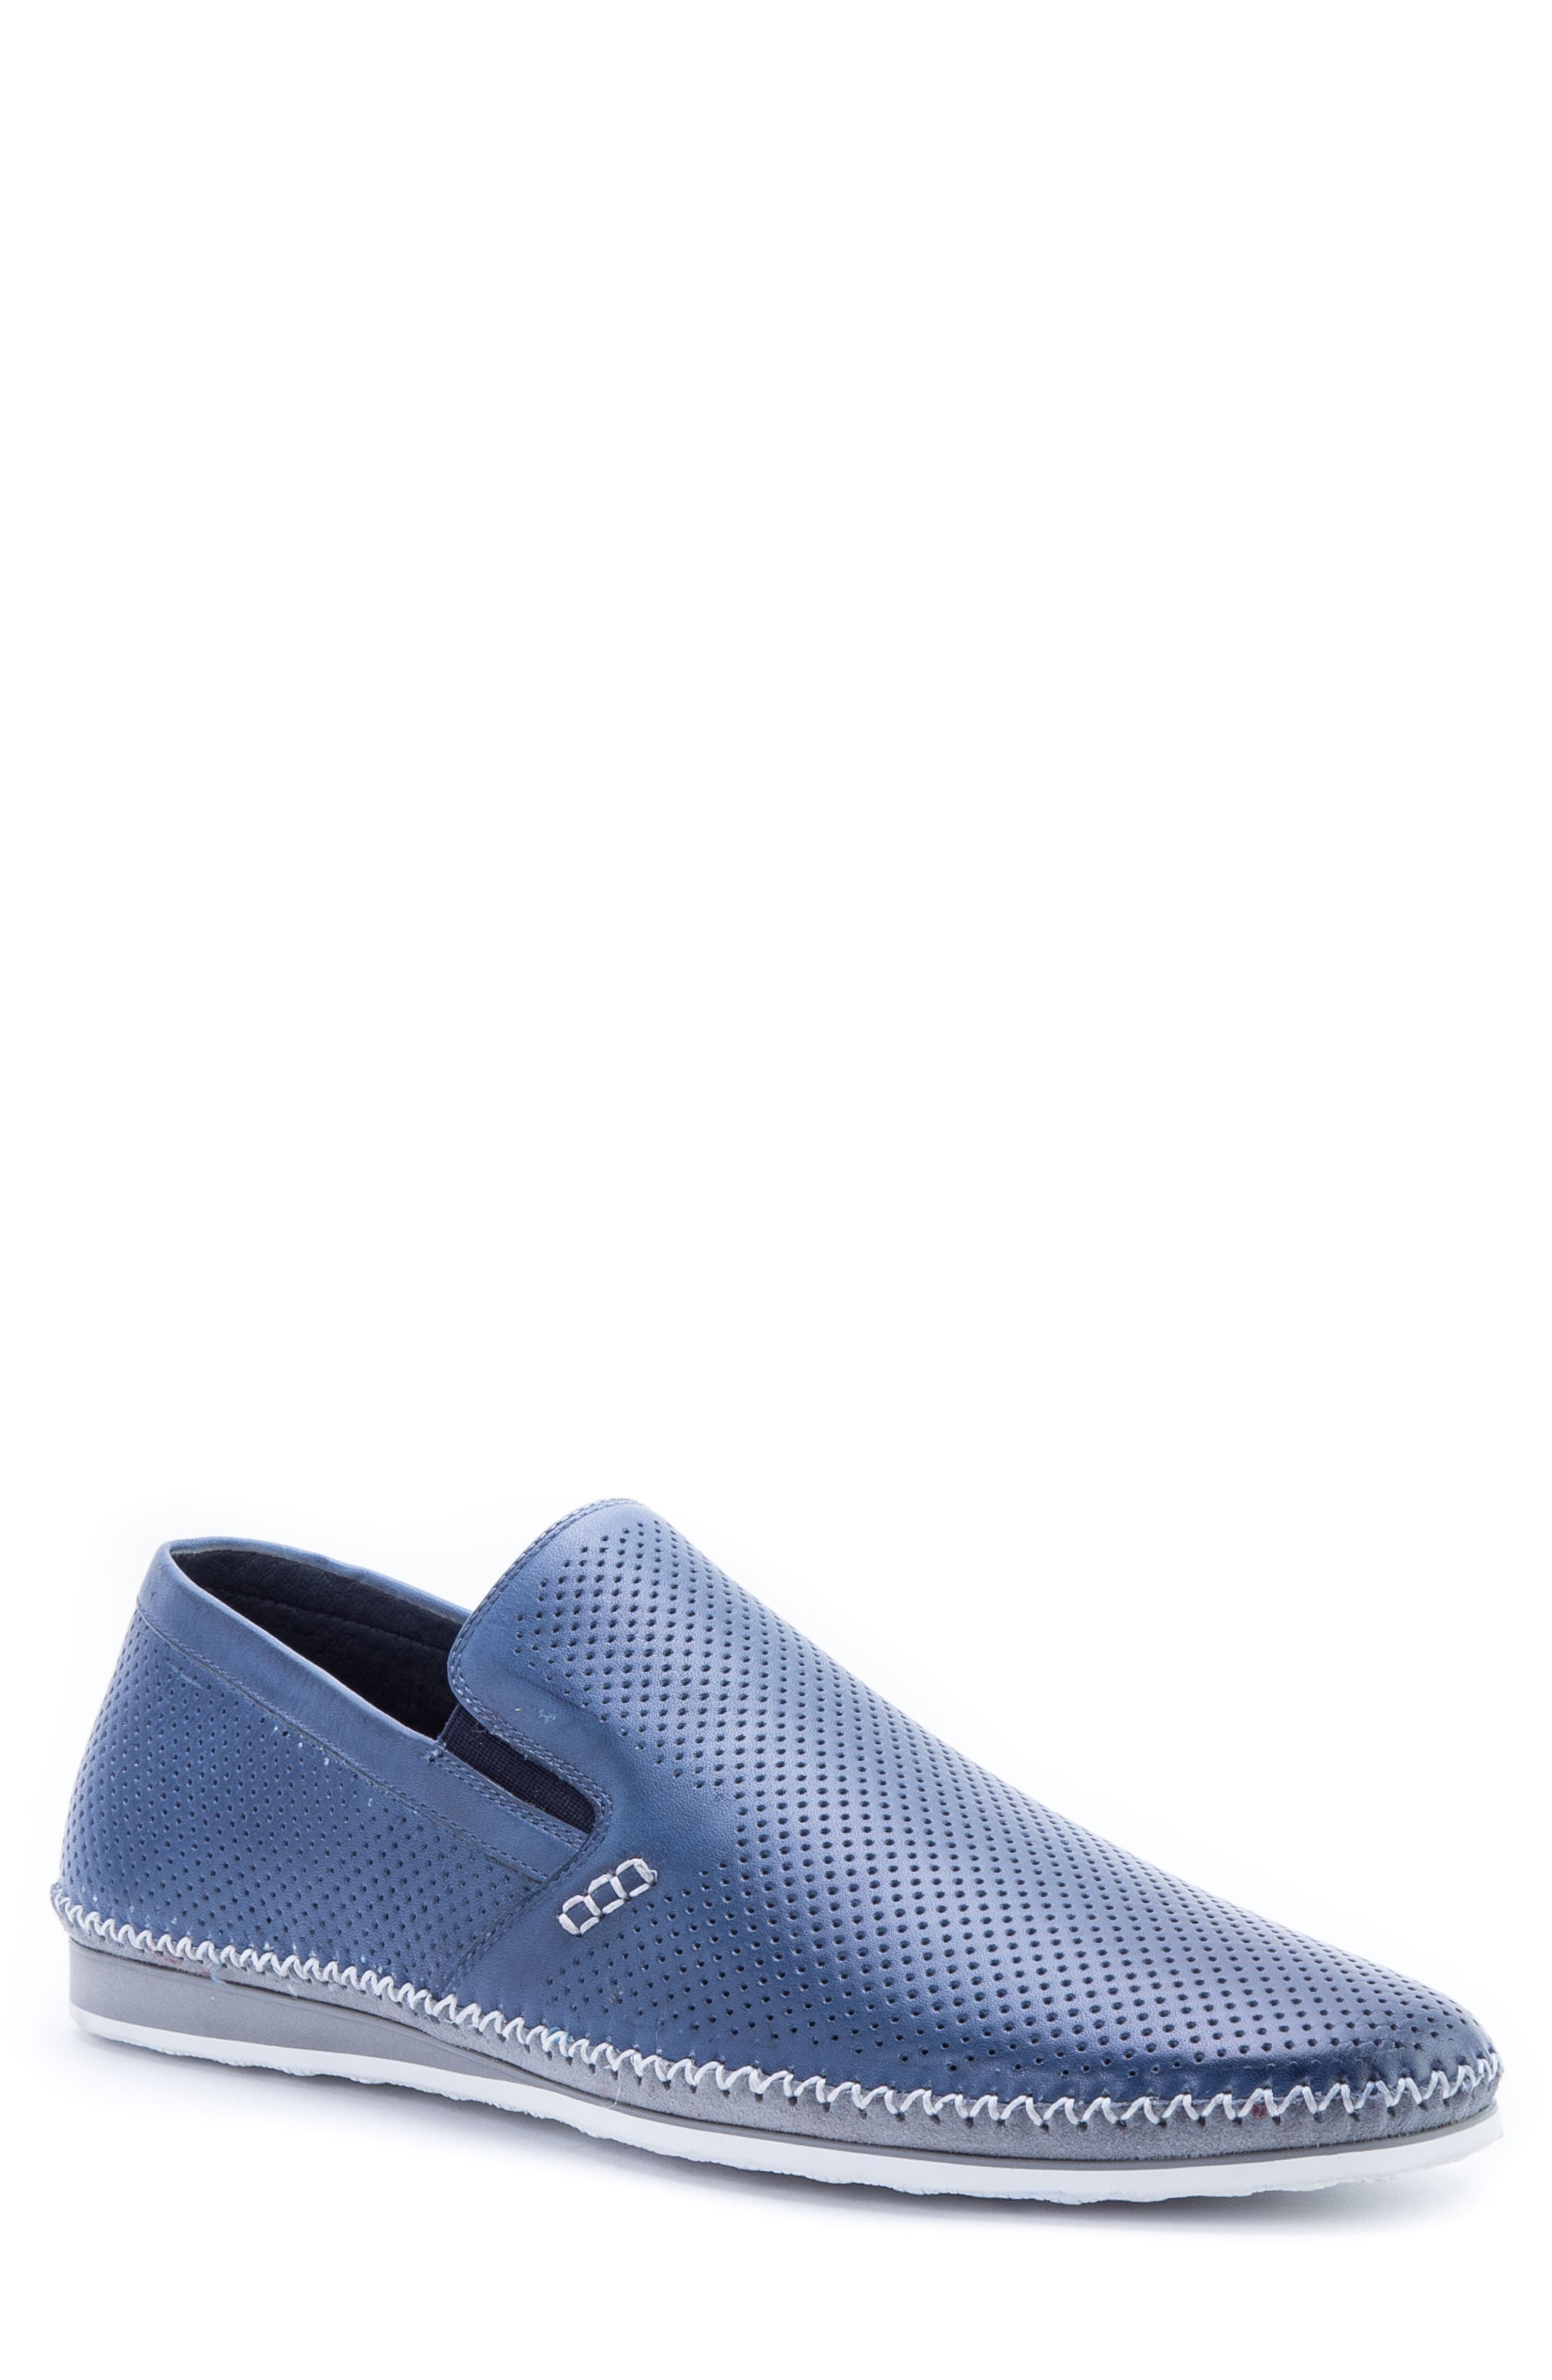 'Merz' Slip-On,                             Main thumbnail 1, color,                             Navy/ Navy Leather